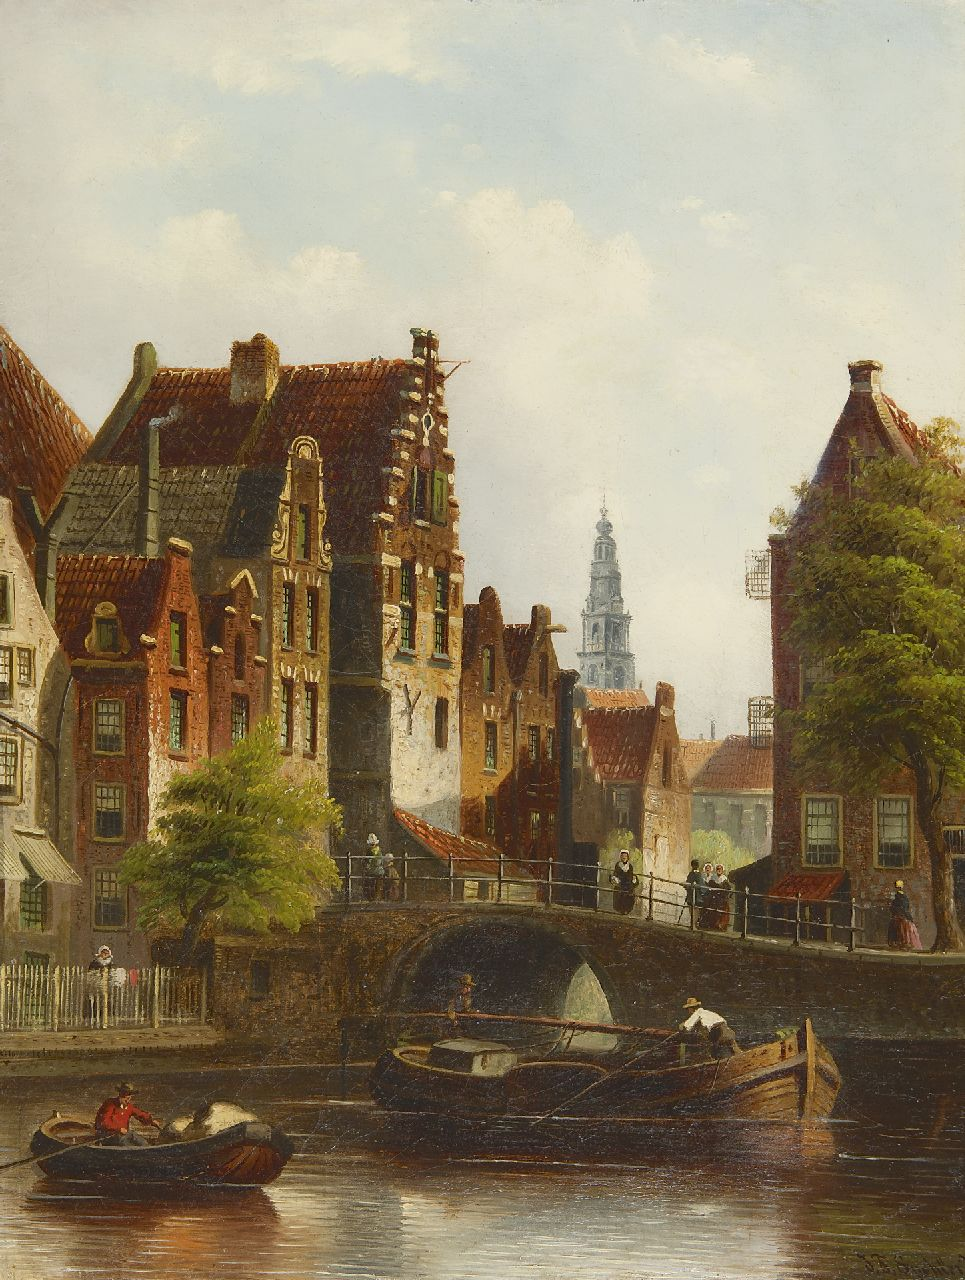 Spohler J.F.  | Johannes Franciscus Spohler, A view on the Grimnessesluis, Amsterdam, oil on canvas 44.2 x 35.3 cm, signed l.r.